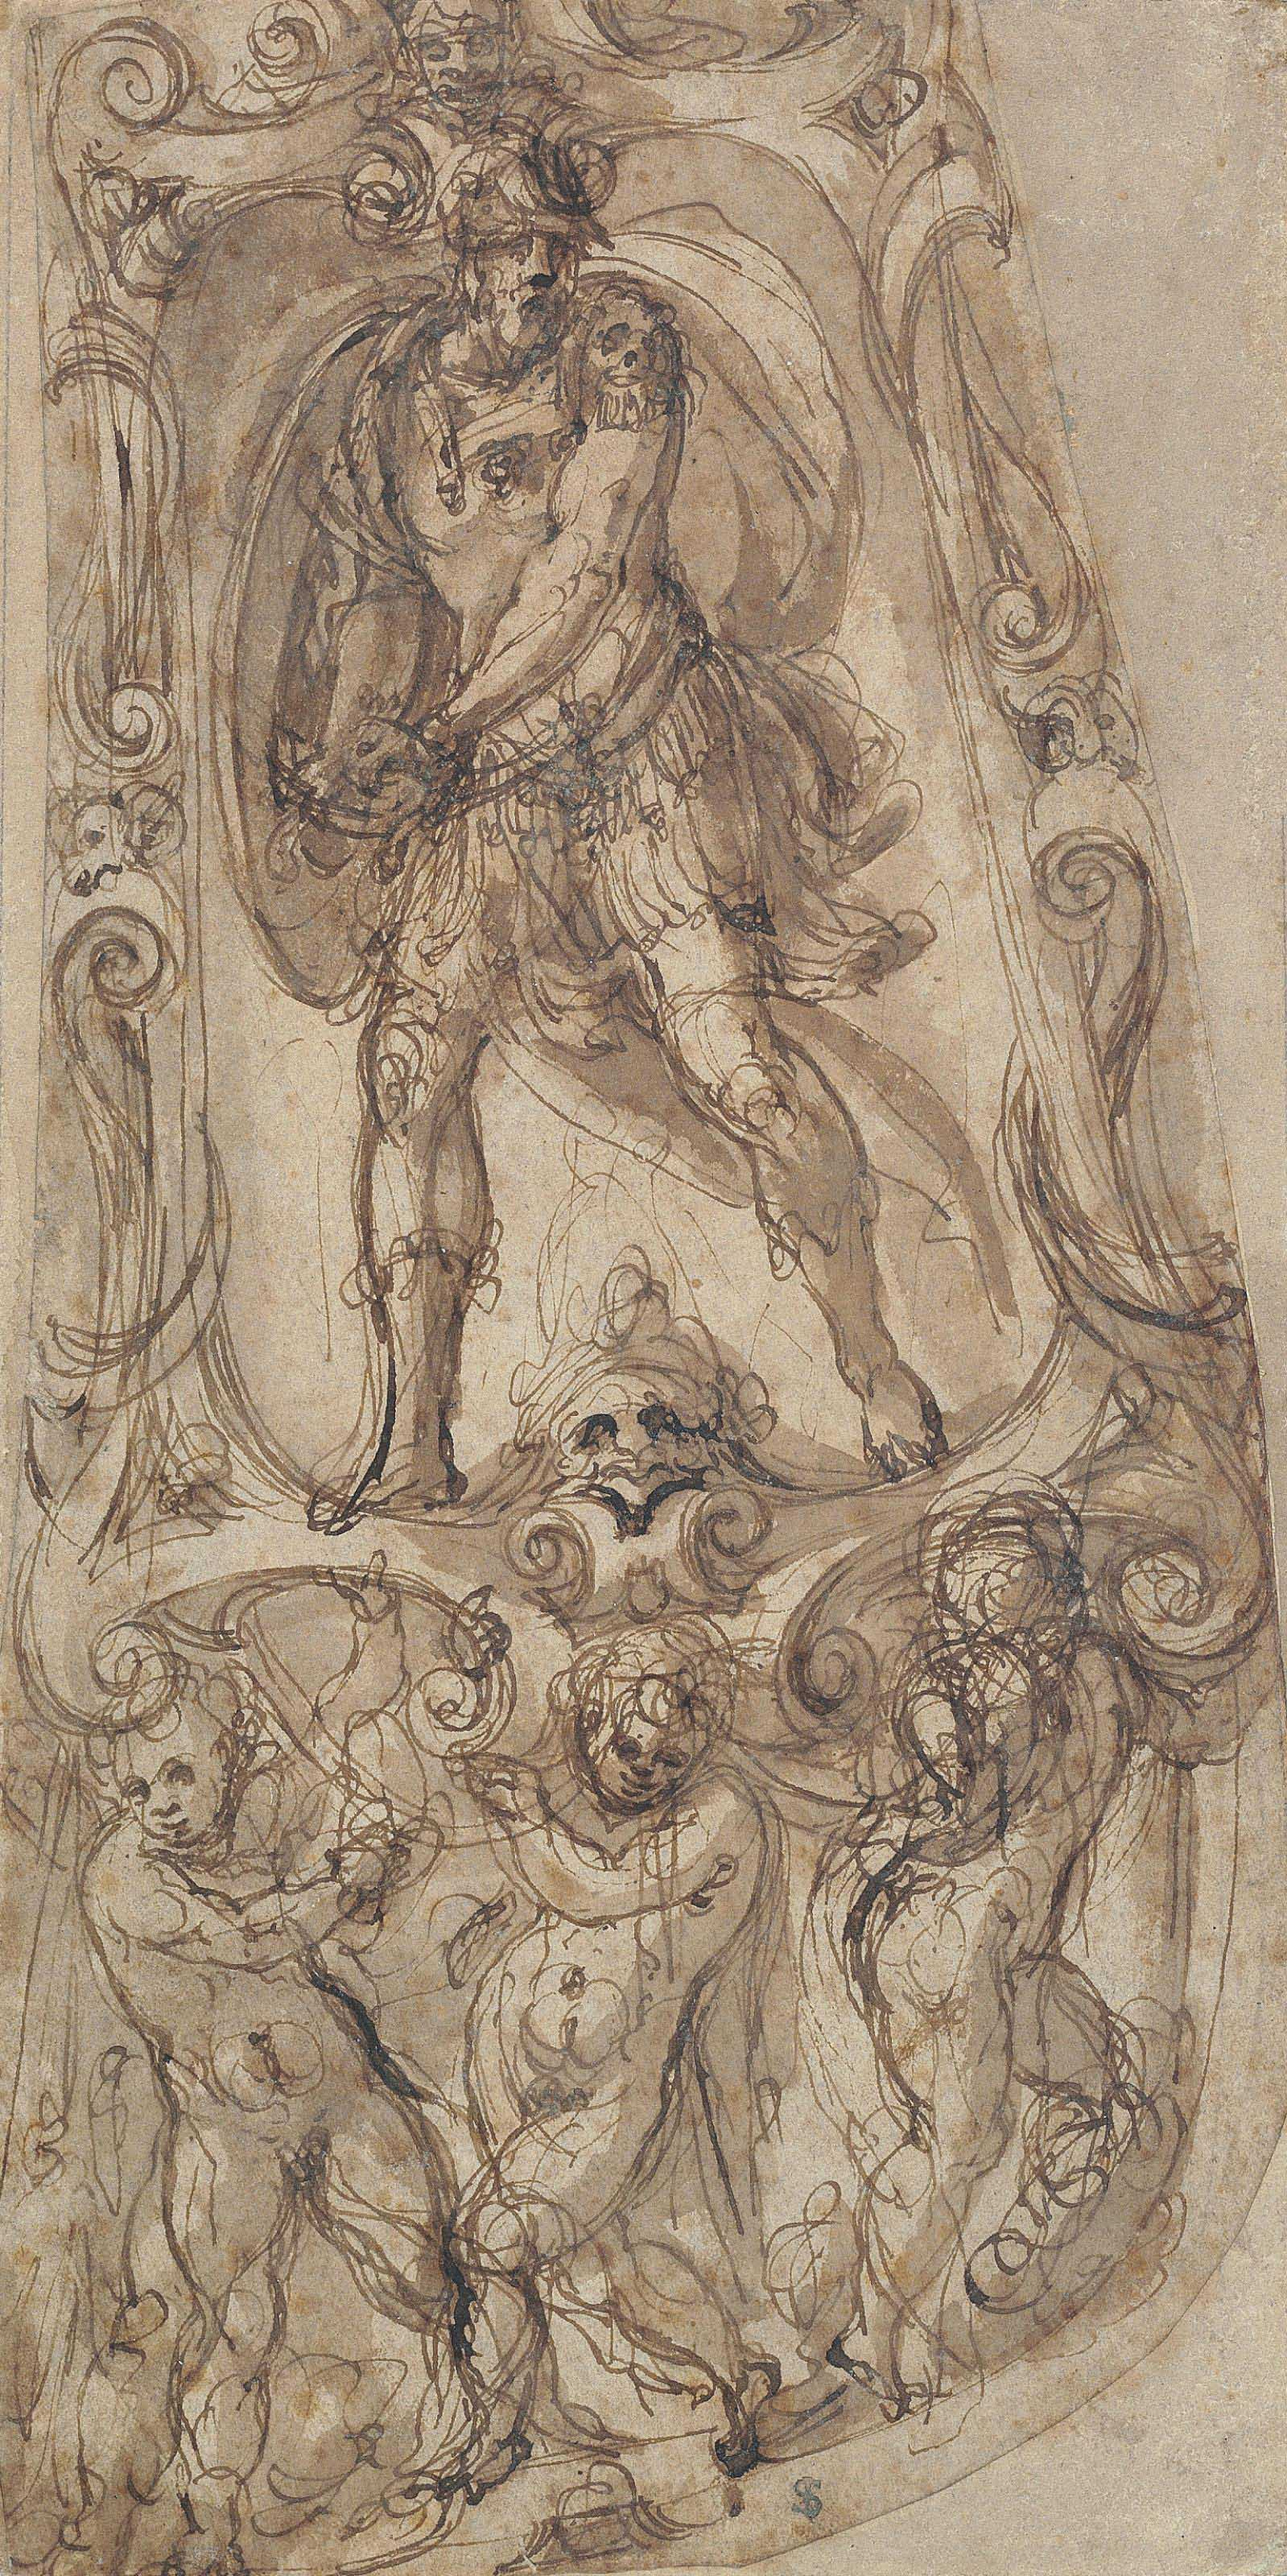 Study for armour: A warrior in an elaborate frame supported by putti